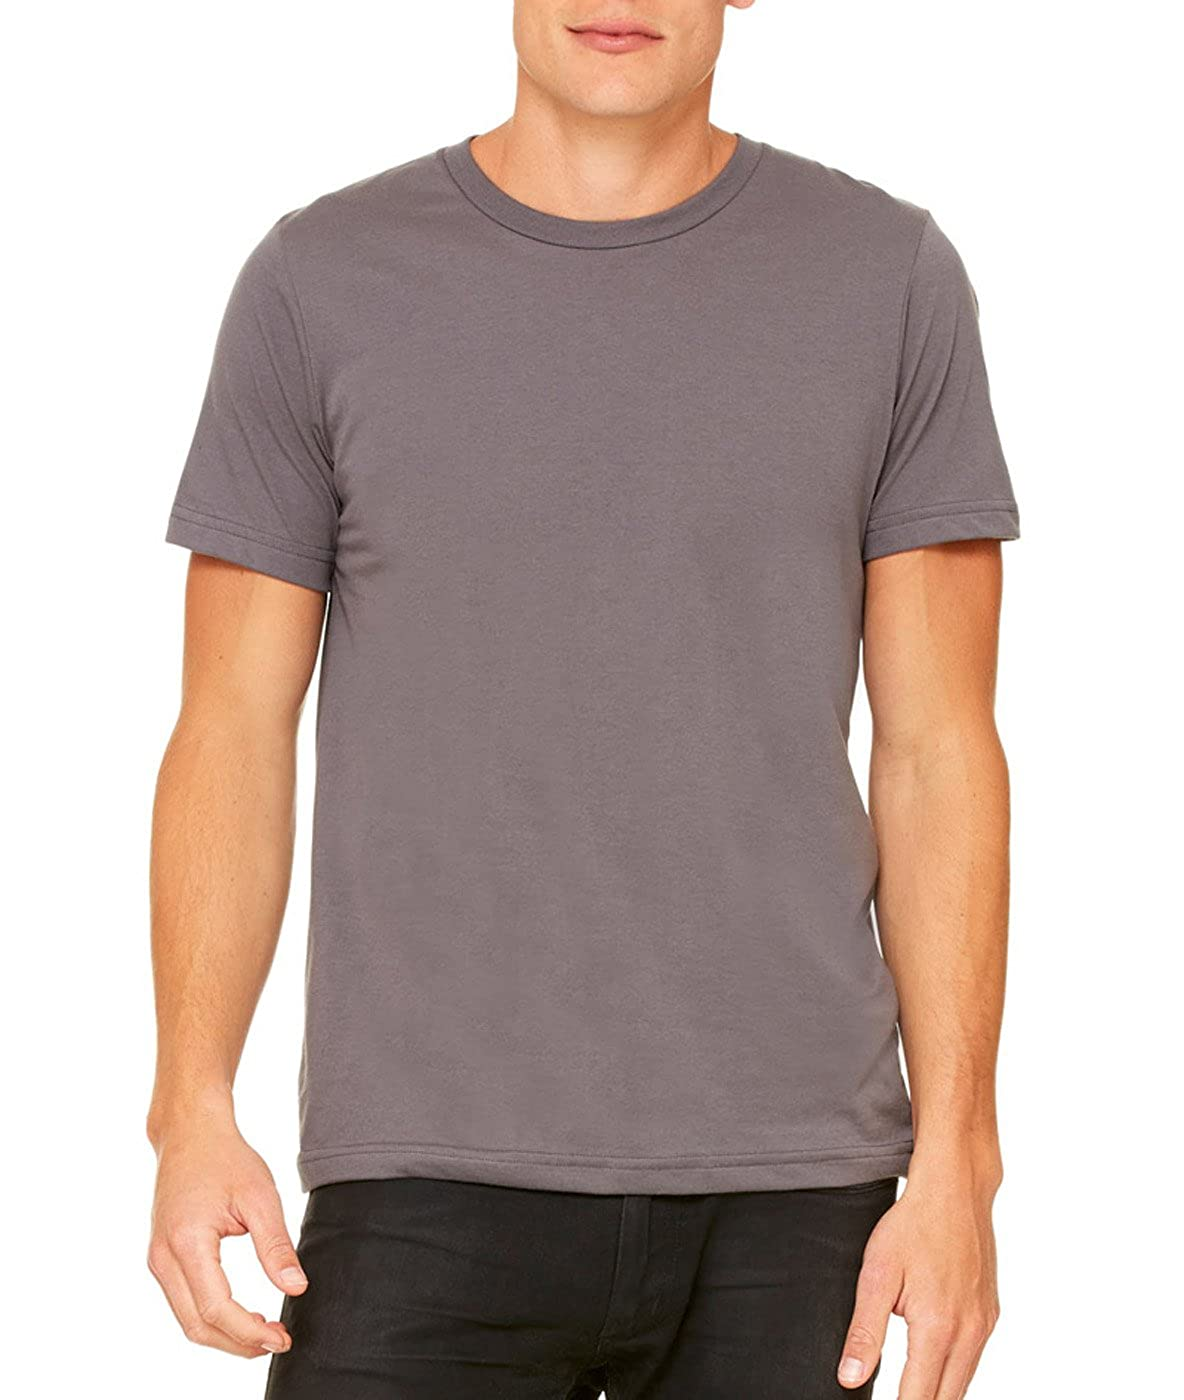 ASPHALT Canvas Unisex Poly-Cotton Short-Sleeve T-Shirt 3650 Bella